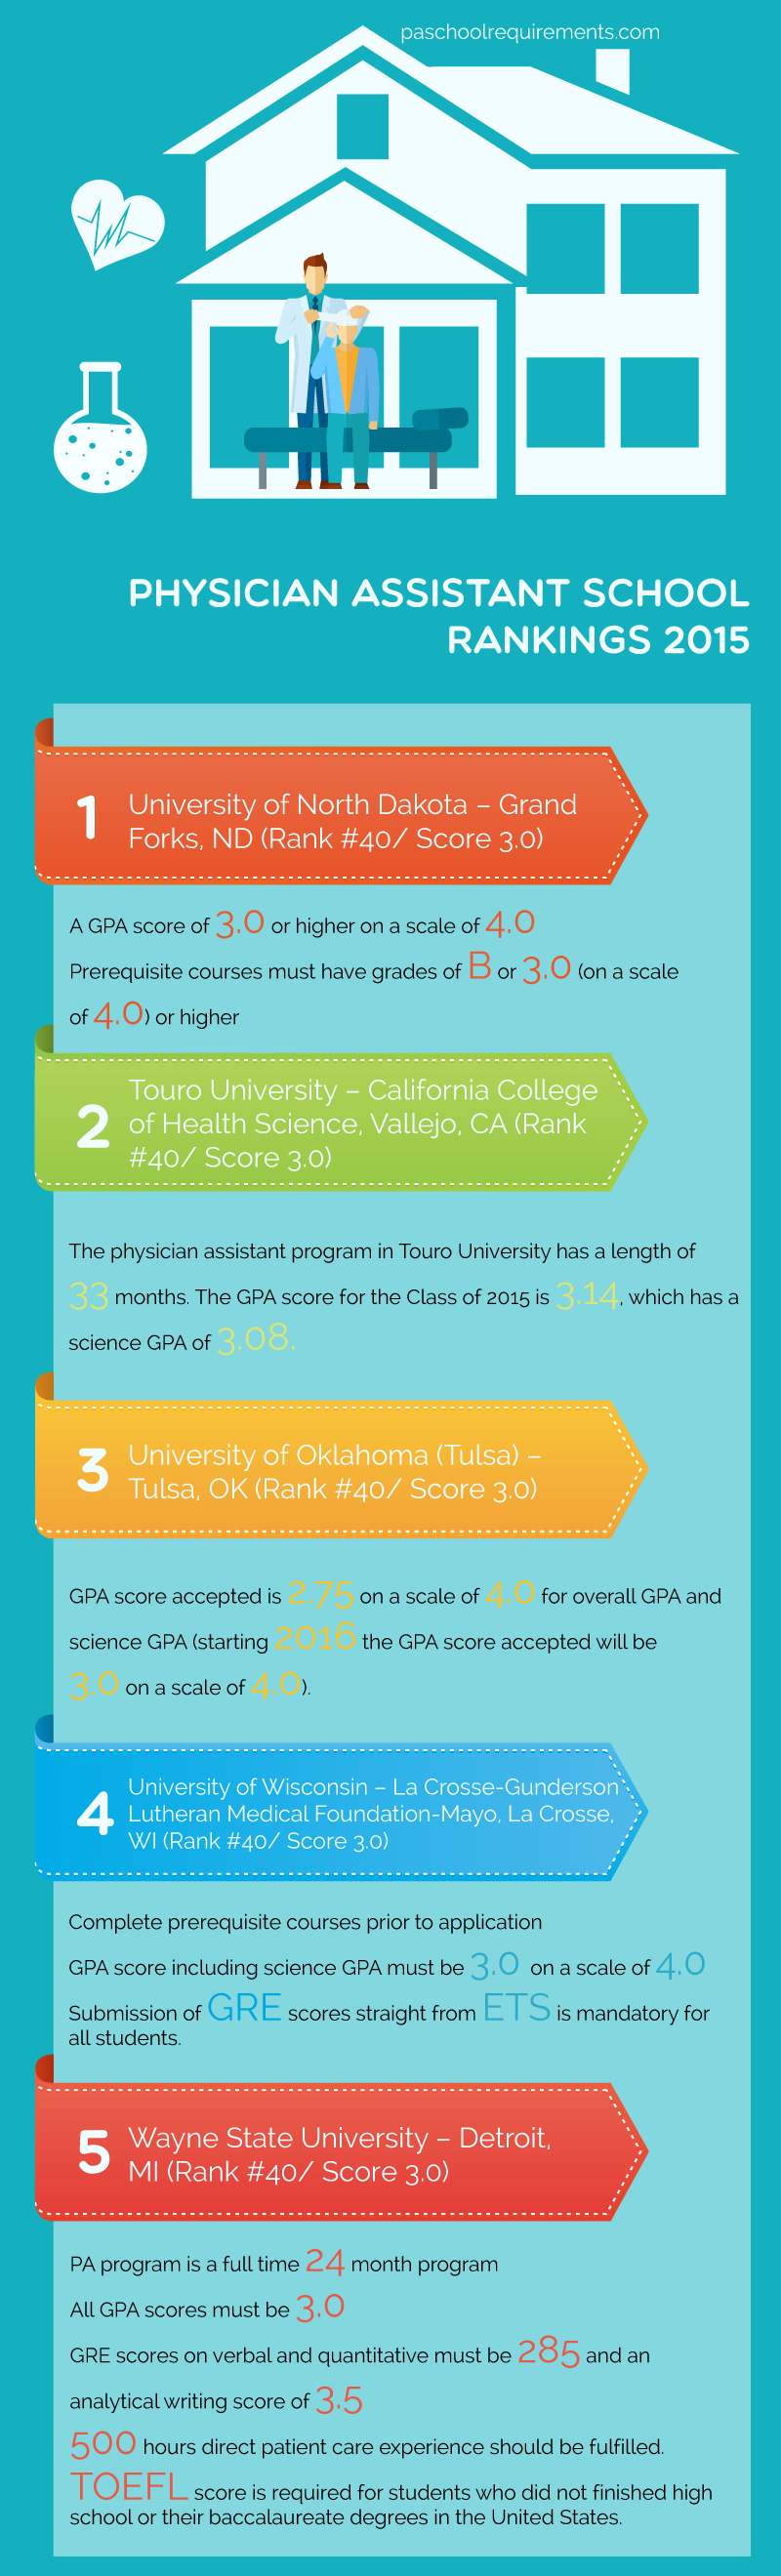 Physician Assistant School Rankings 2015